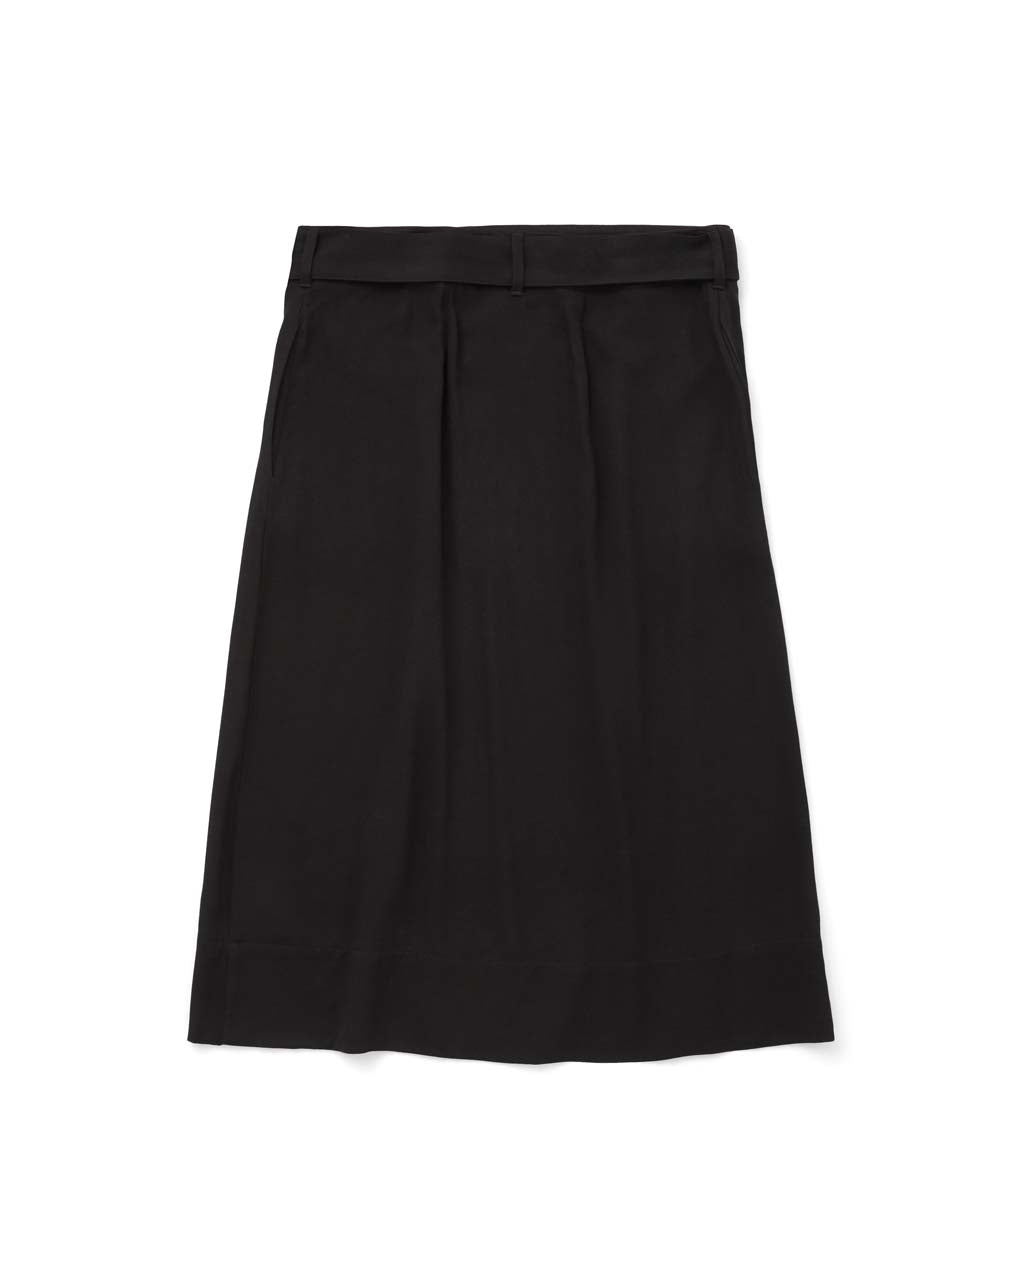 This wrap skirt is a true collaboration between us and you.